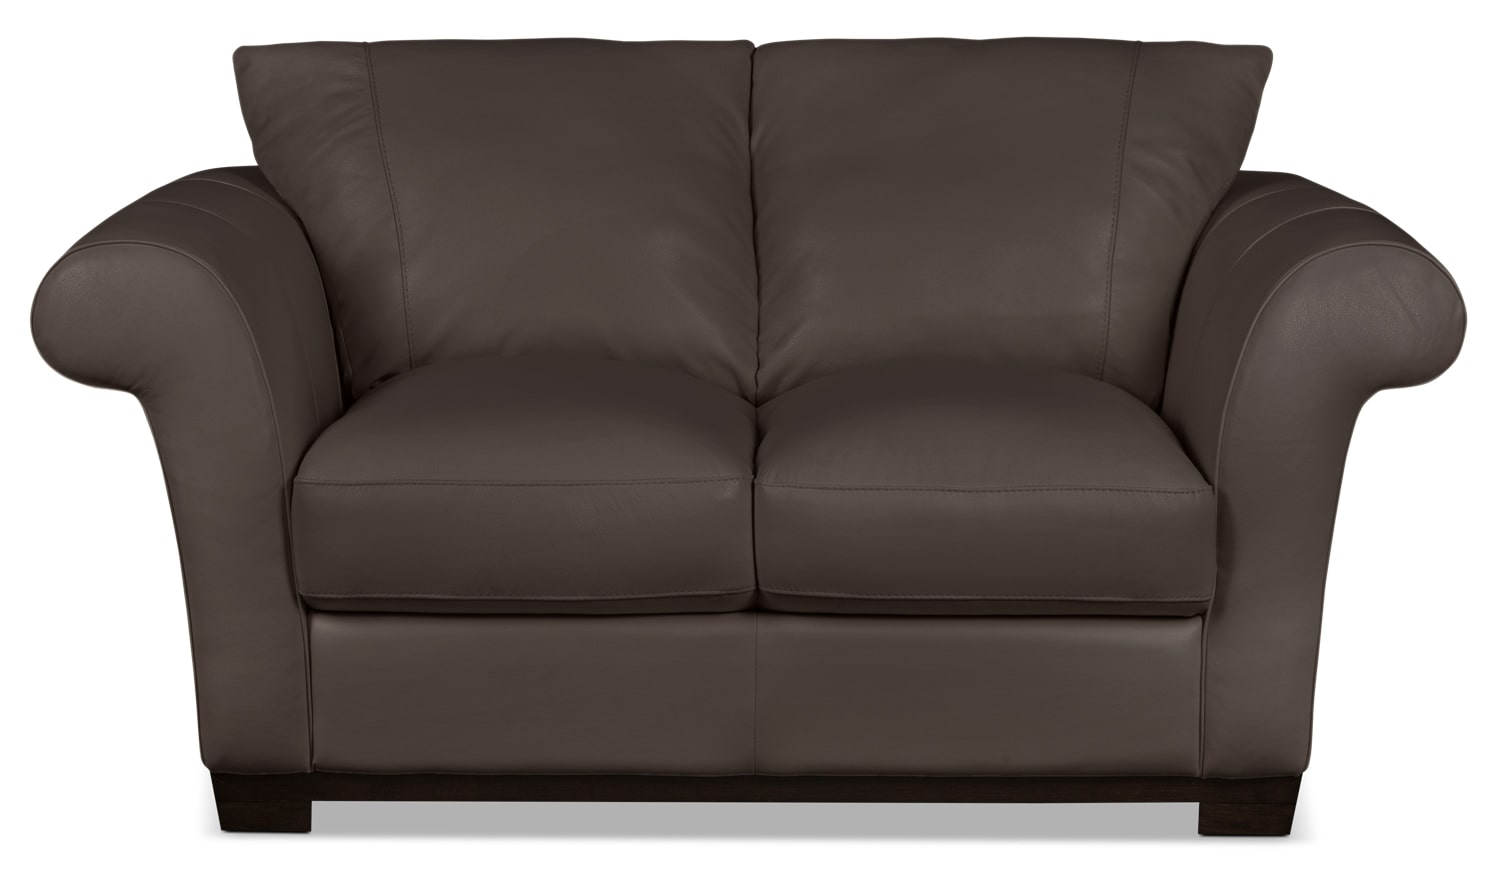 Living Room Furniture - Layla Genuine Leather Loveseat – Brown